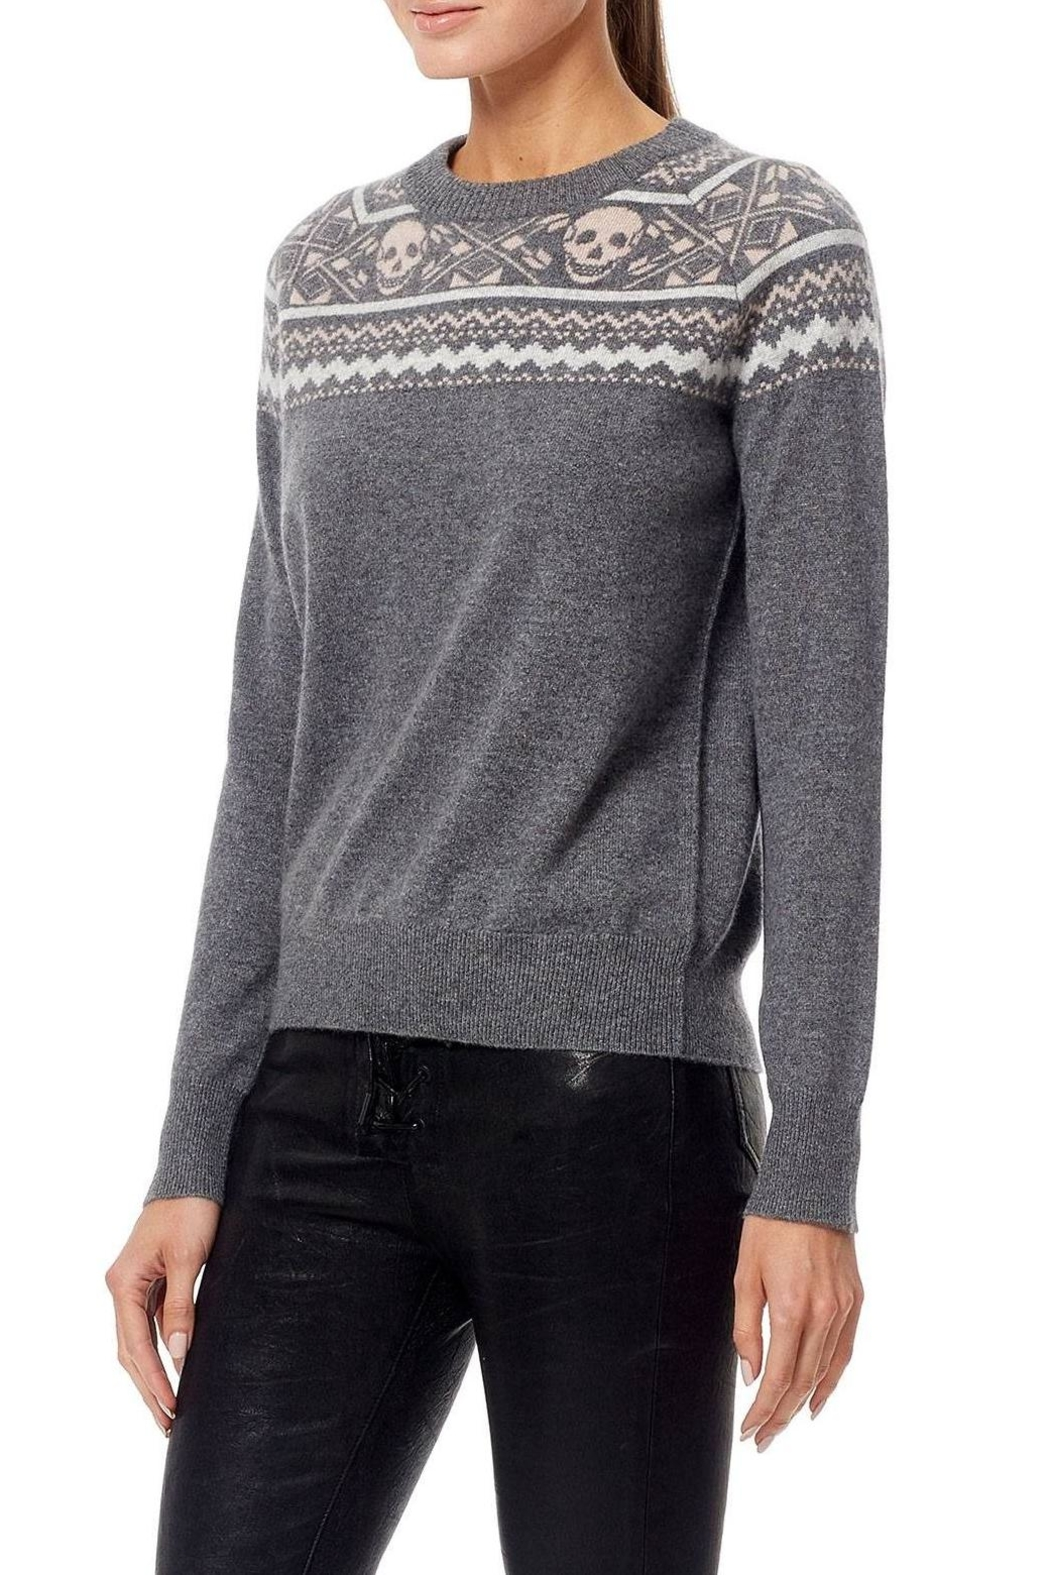 Skull Cashmere Cashmere Miley Sweater - Front Full Image